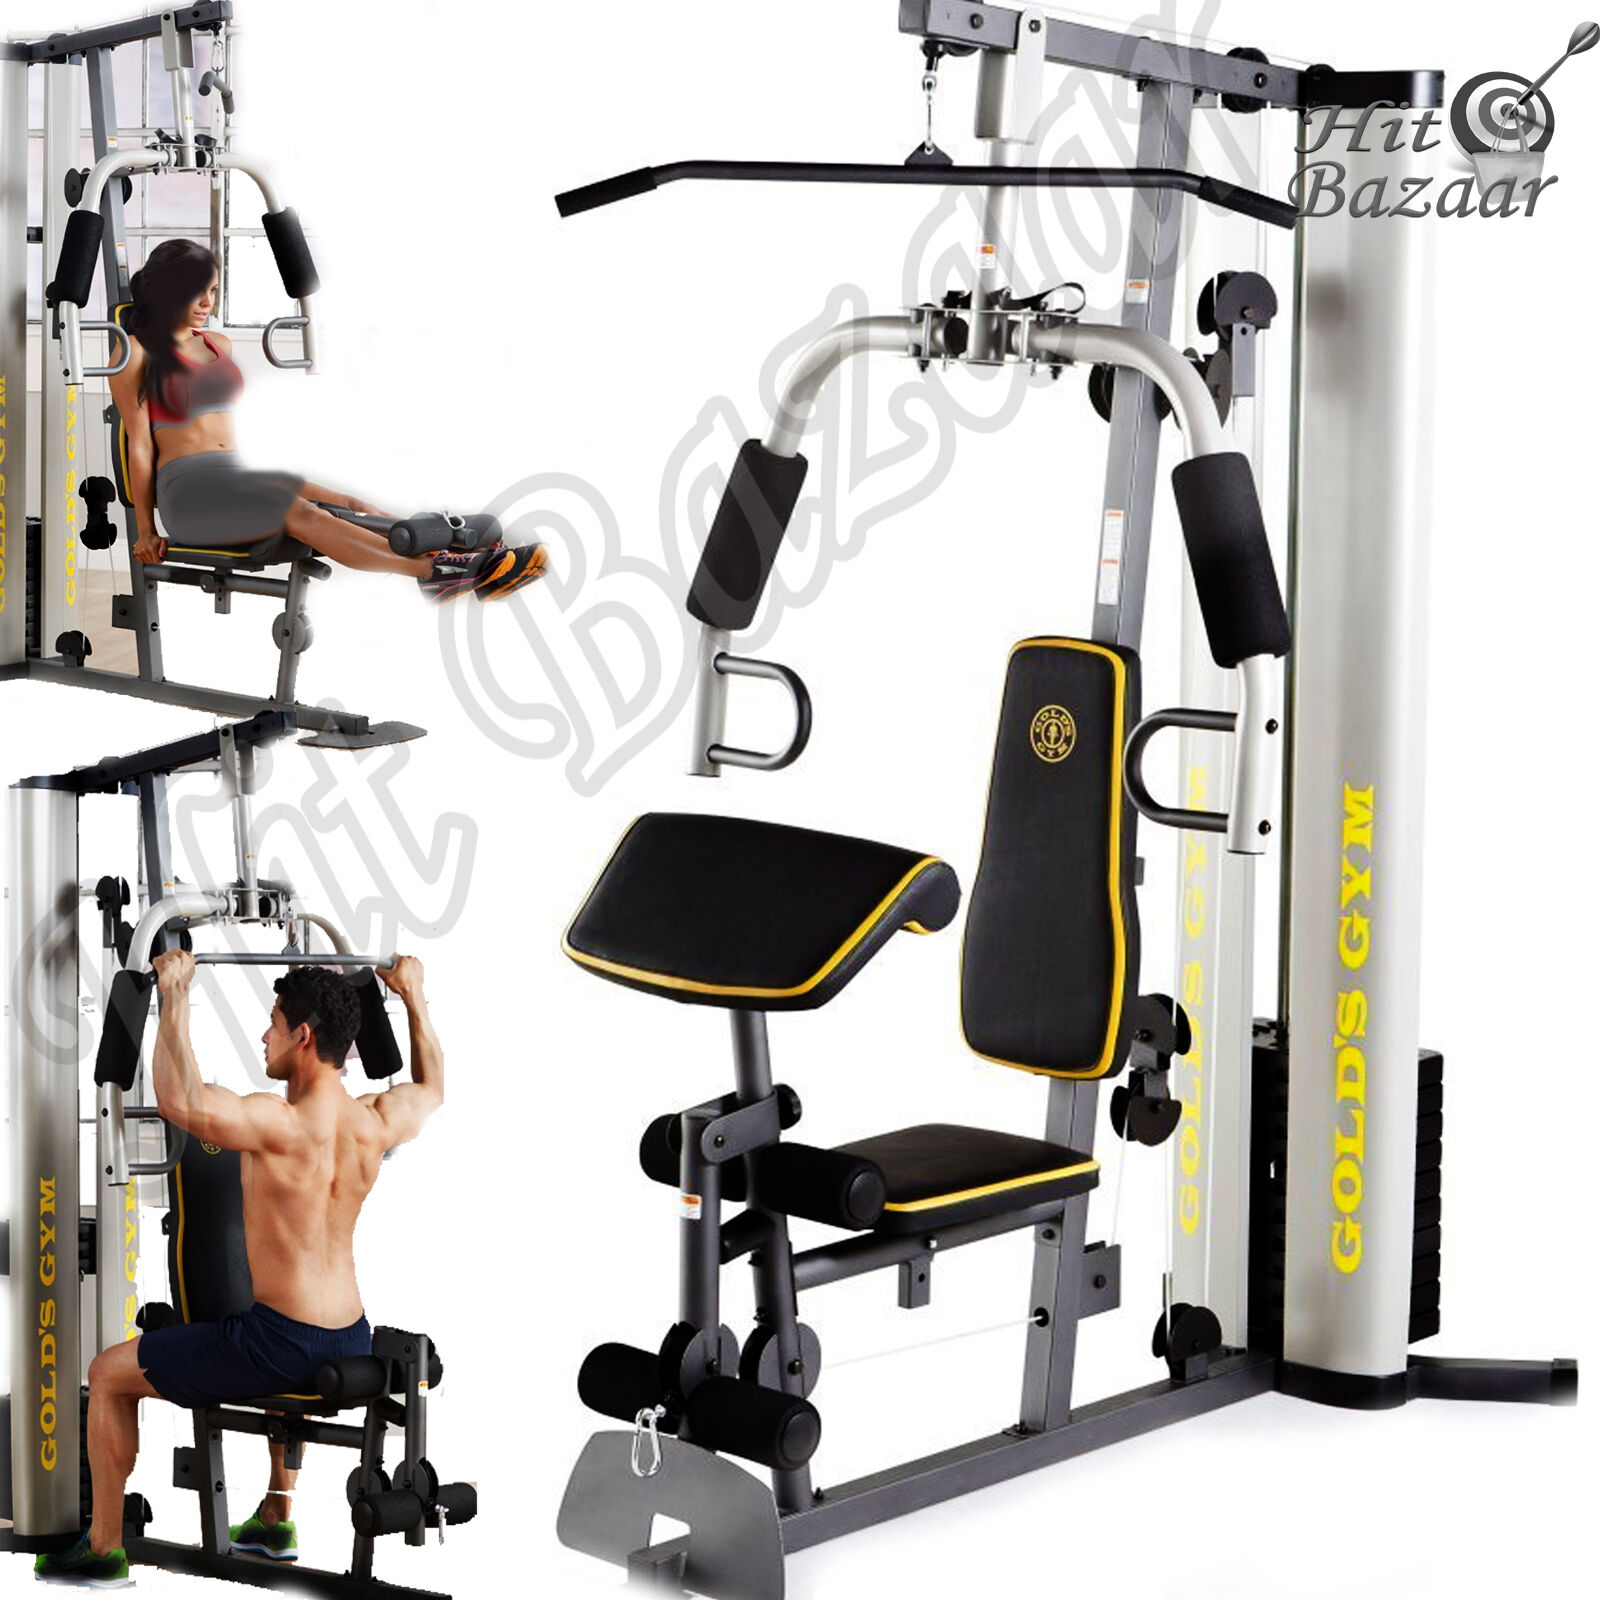 Gym System Strength Training  Workout Equipment Home Exercise Ma ne Weight Lift  brand on sale clearance